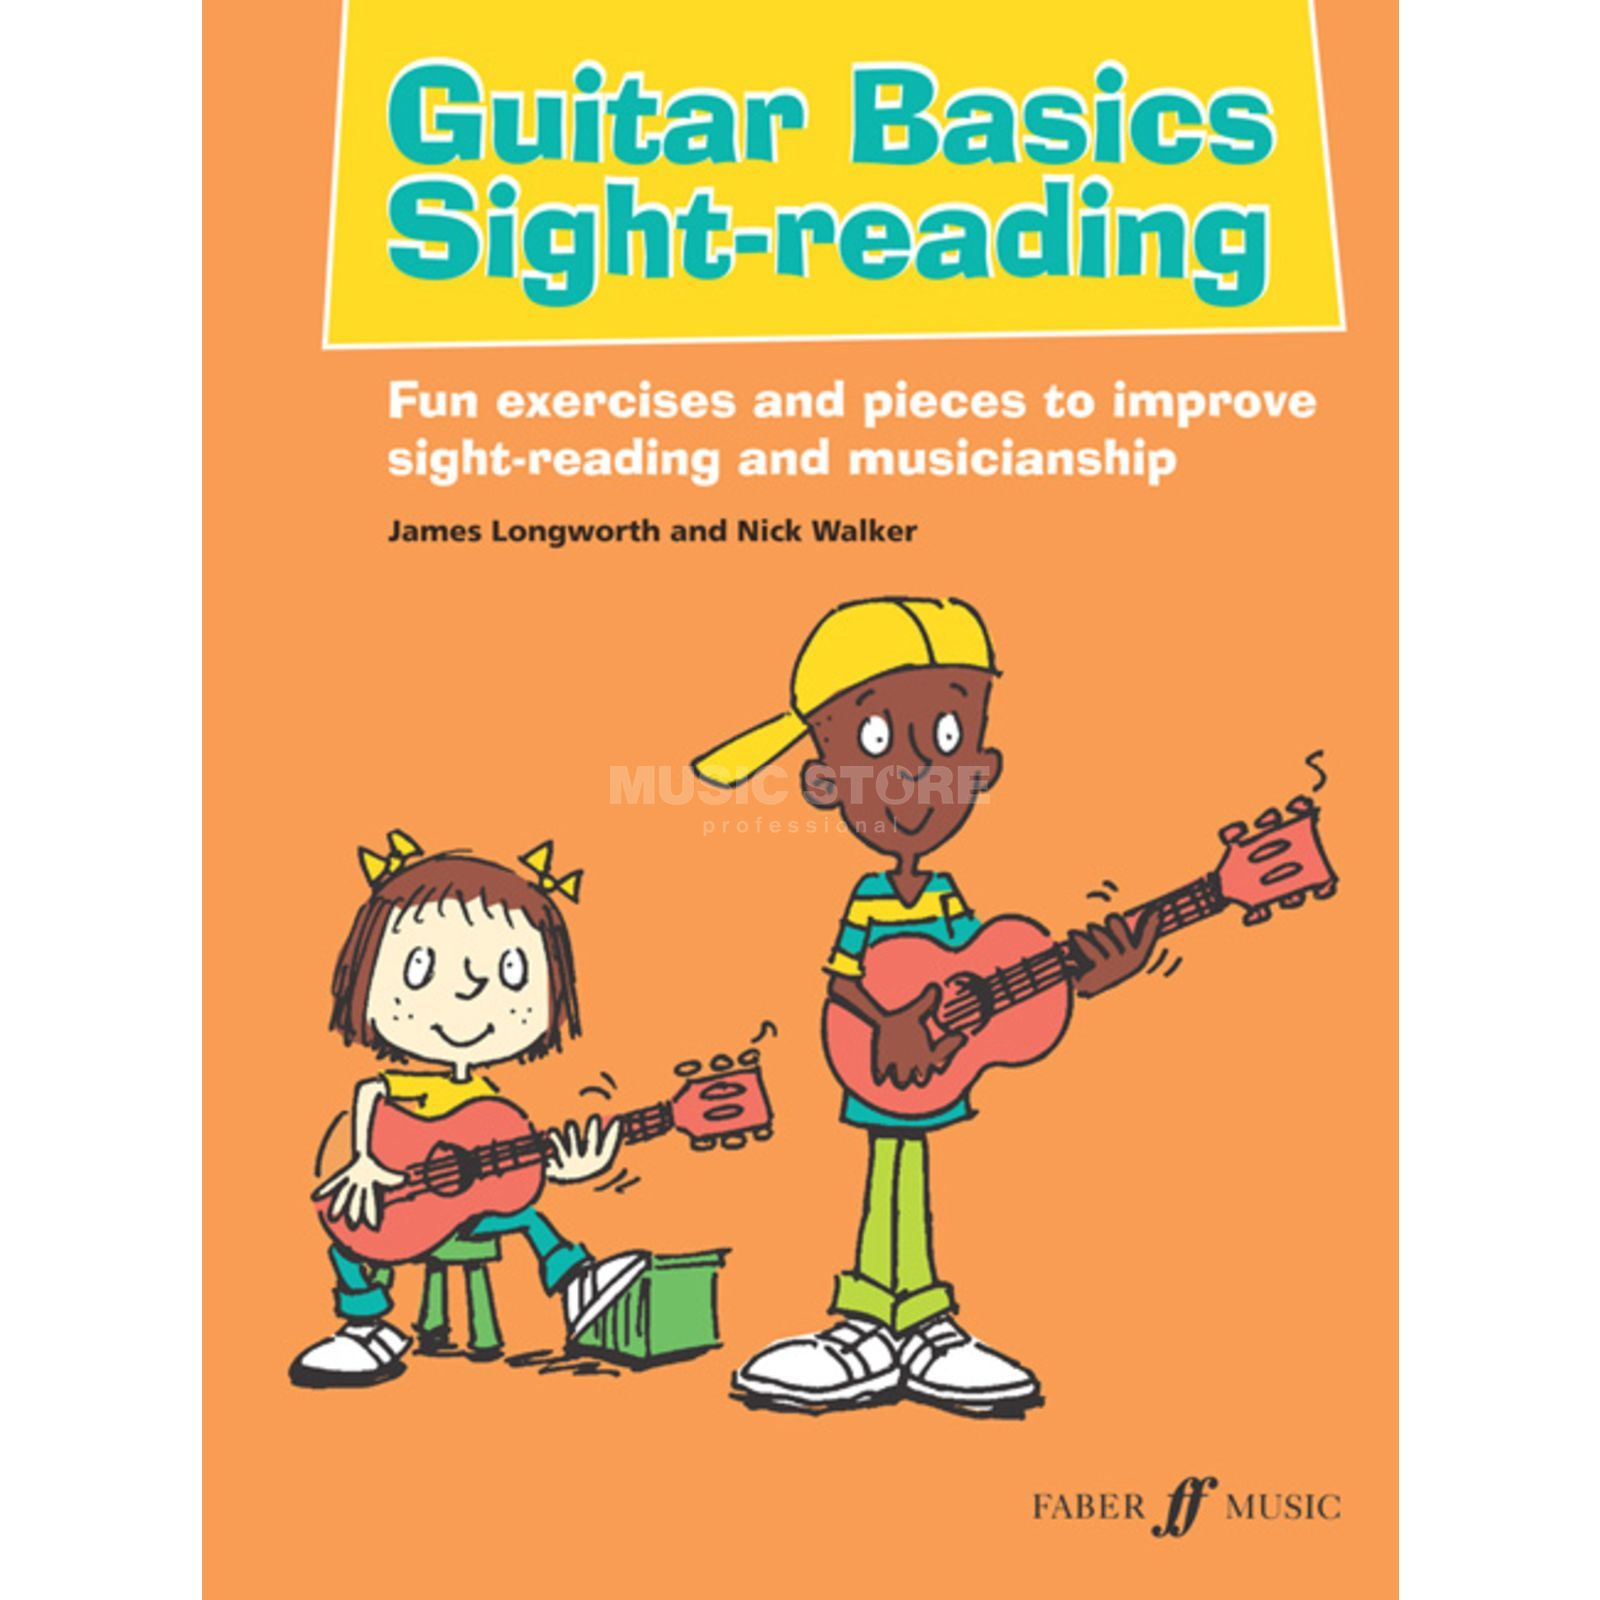 Faber Music Guitar Basics Sight-Reading Walker, Longworth Product Image